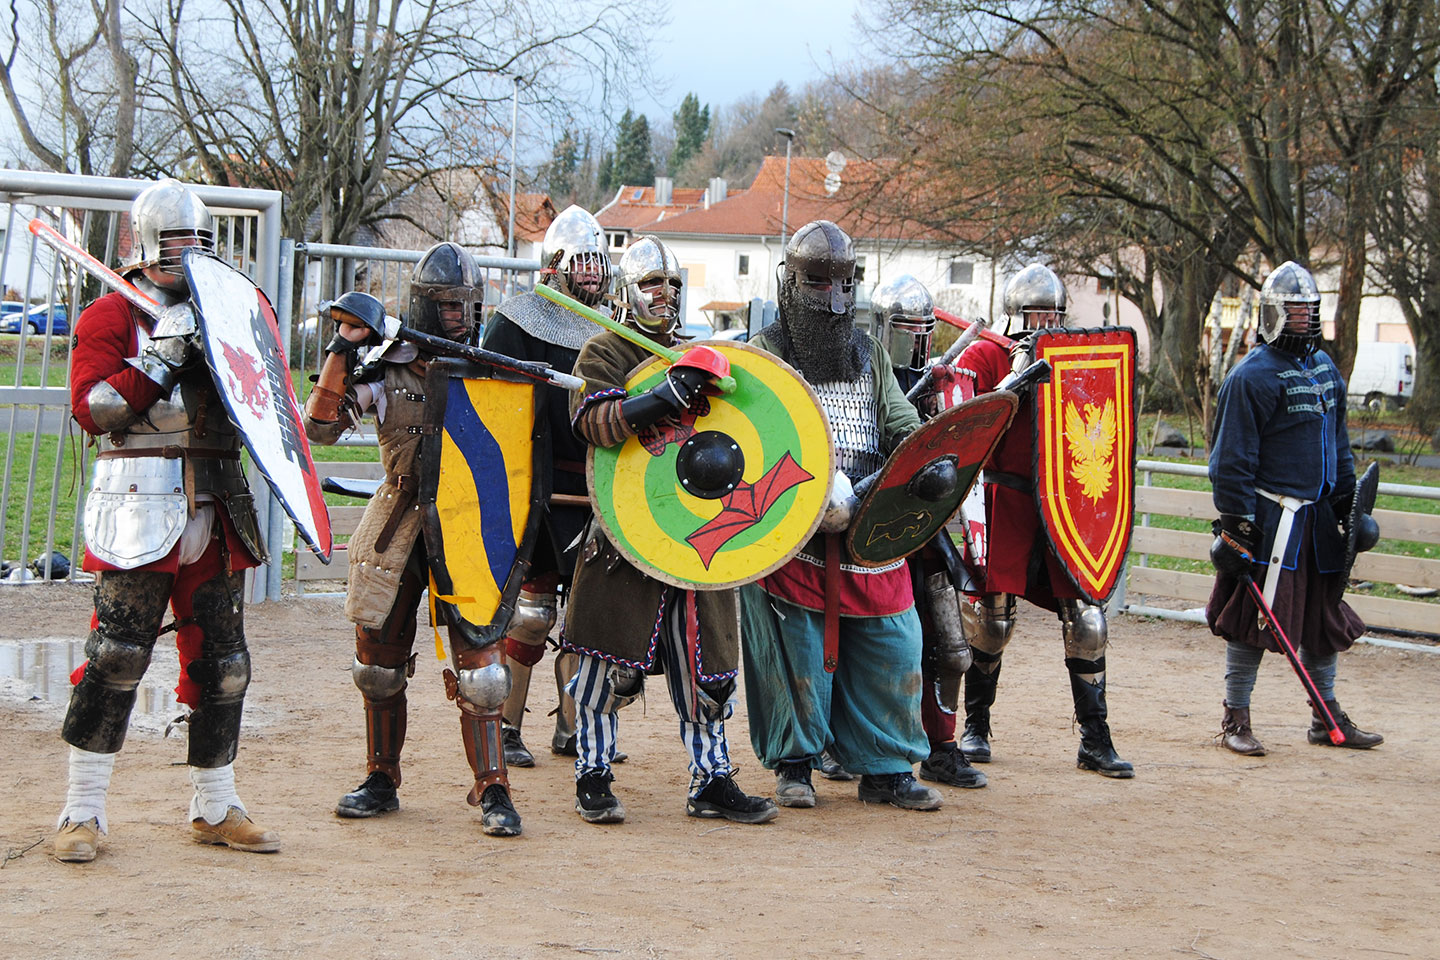 sca-heavy-fighting-shieldwall